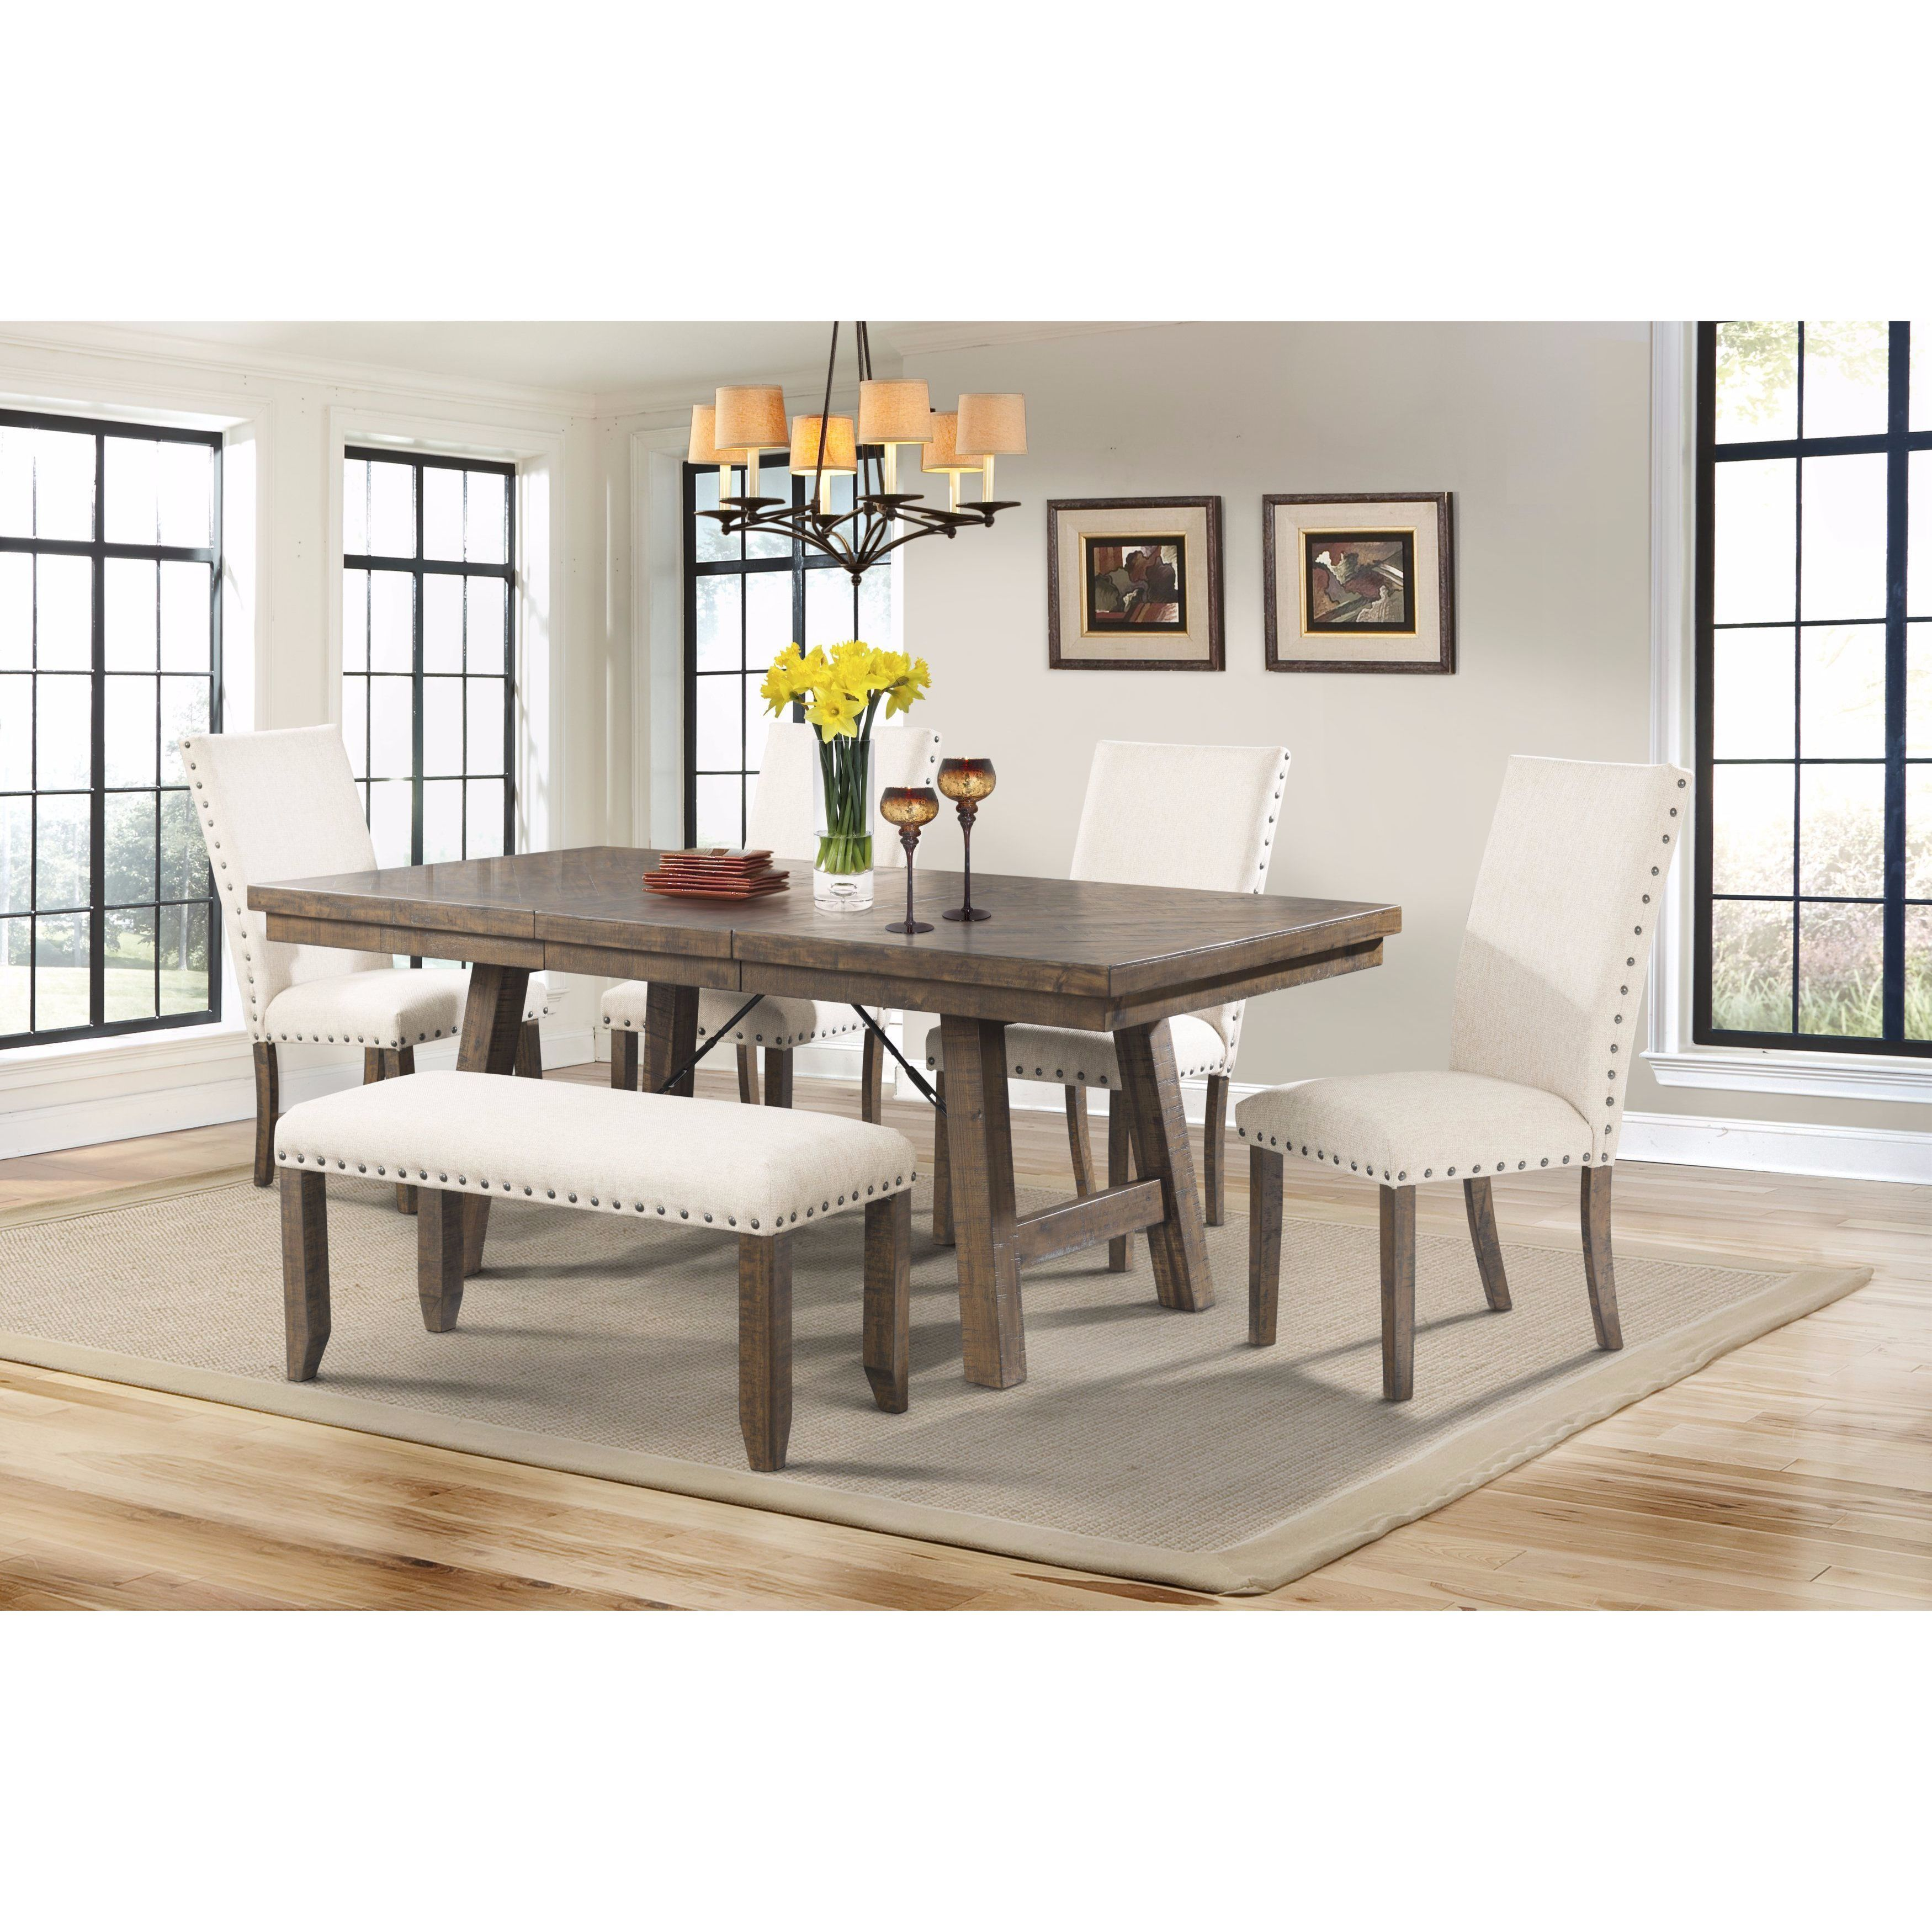 Picket House Dex 6 Piece Dining Table And Chairs Set Free Shipping Today 12809106